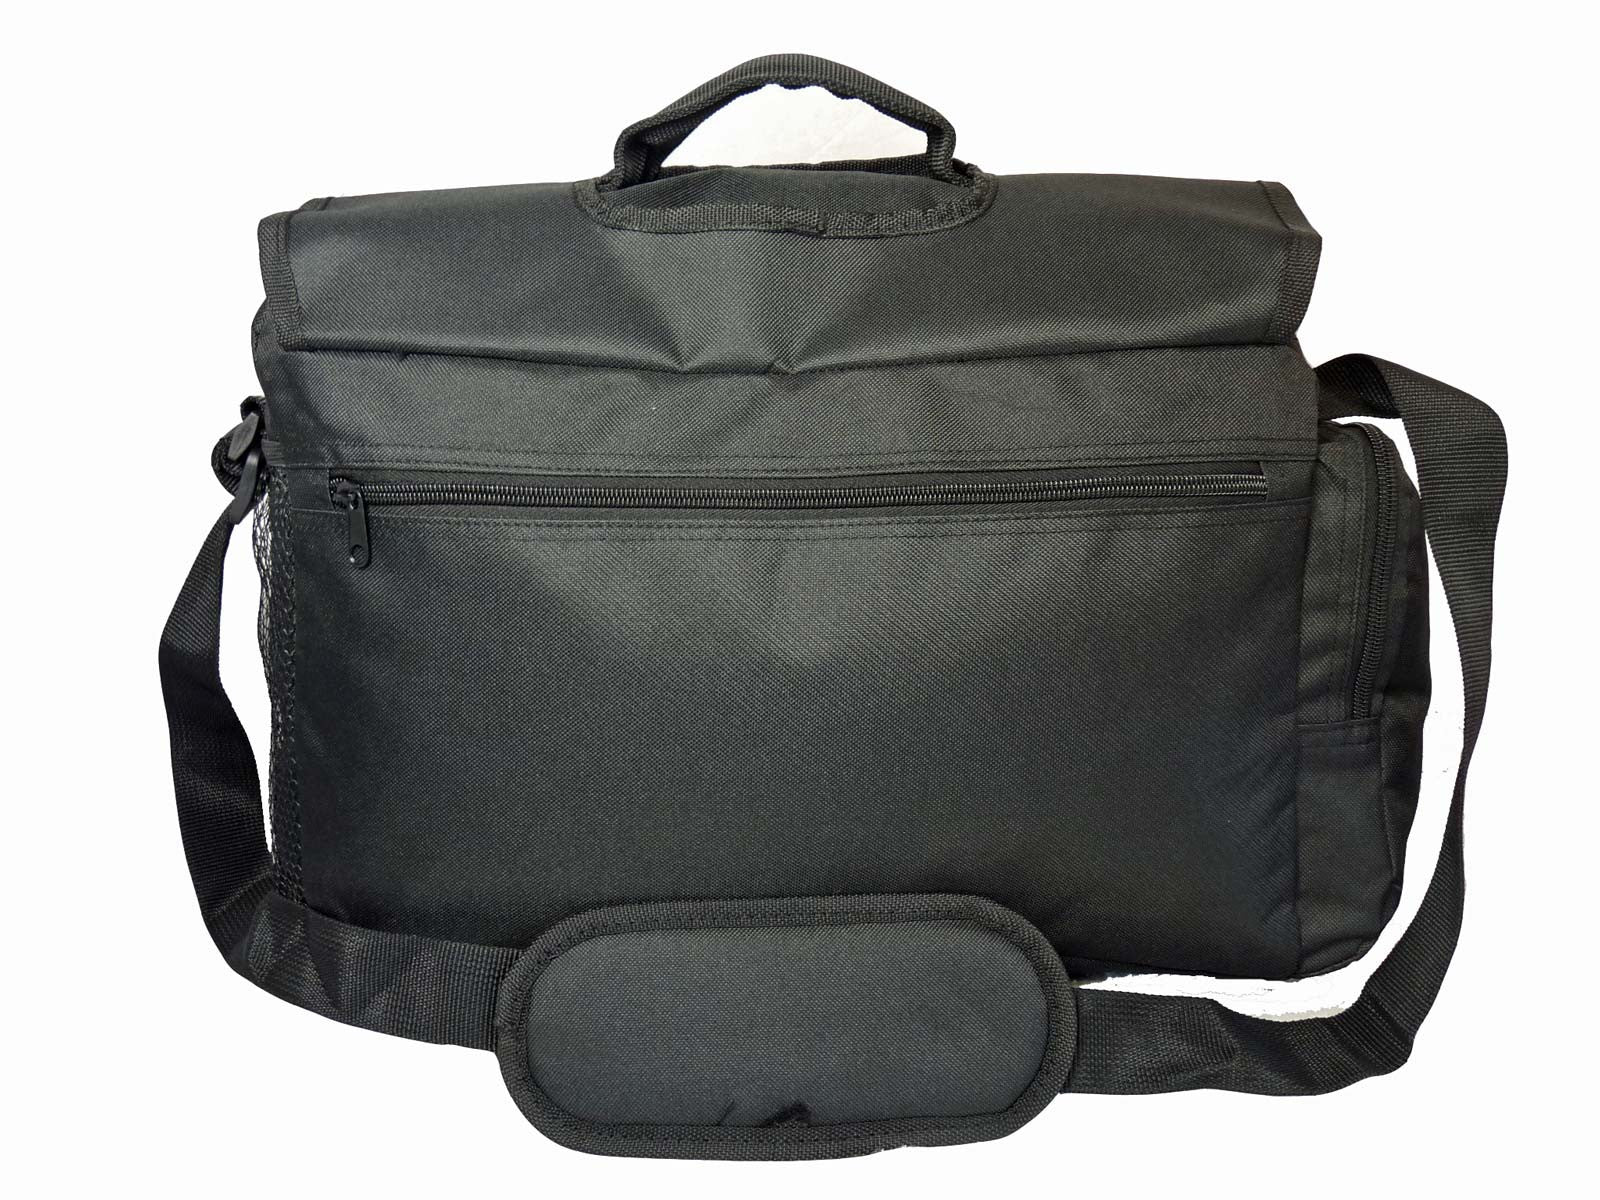 Black Dispatch Messenger Courier Bag Bags R39 back view